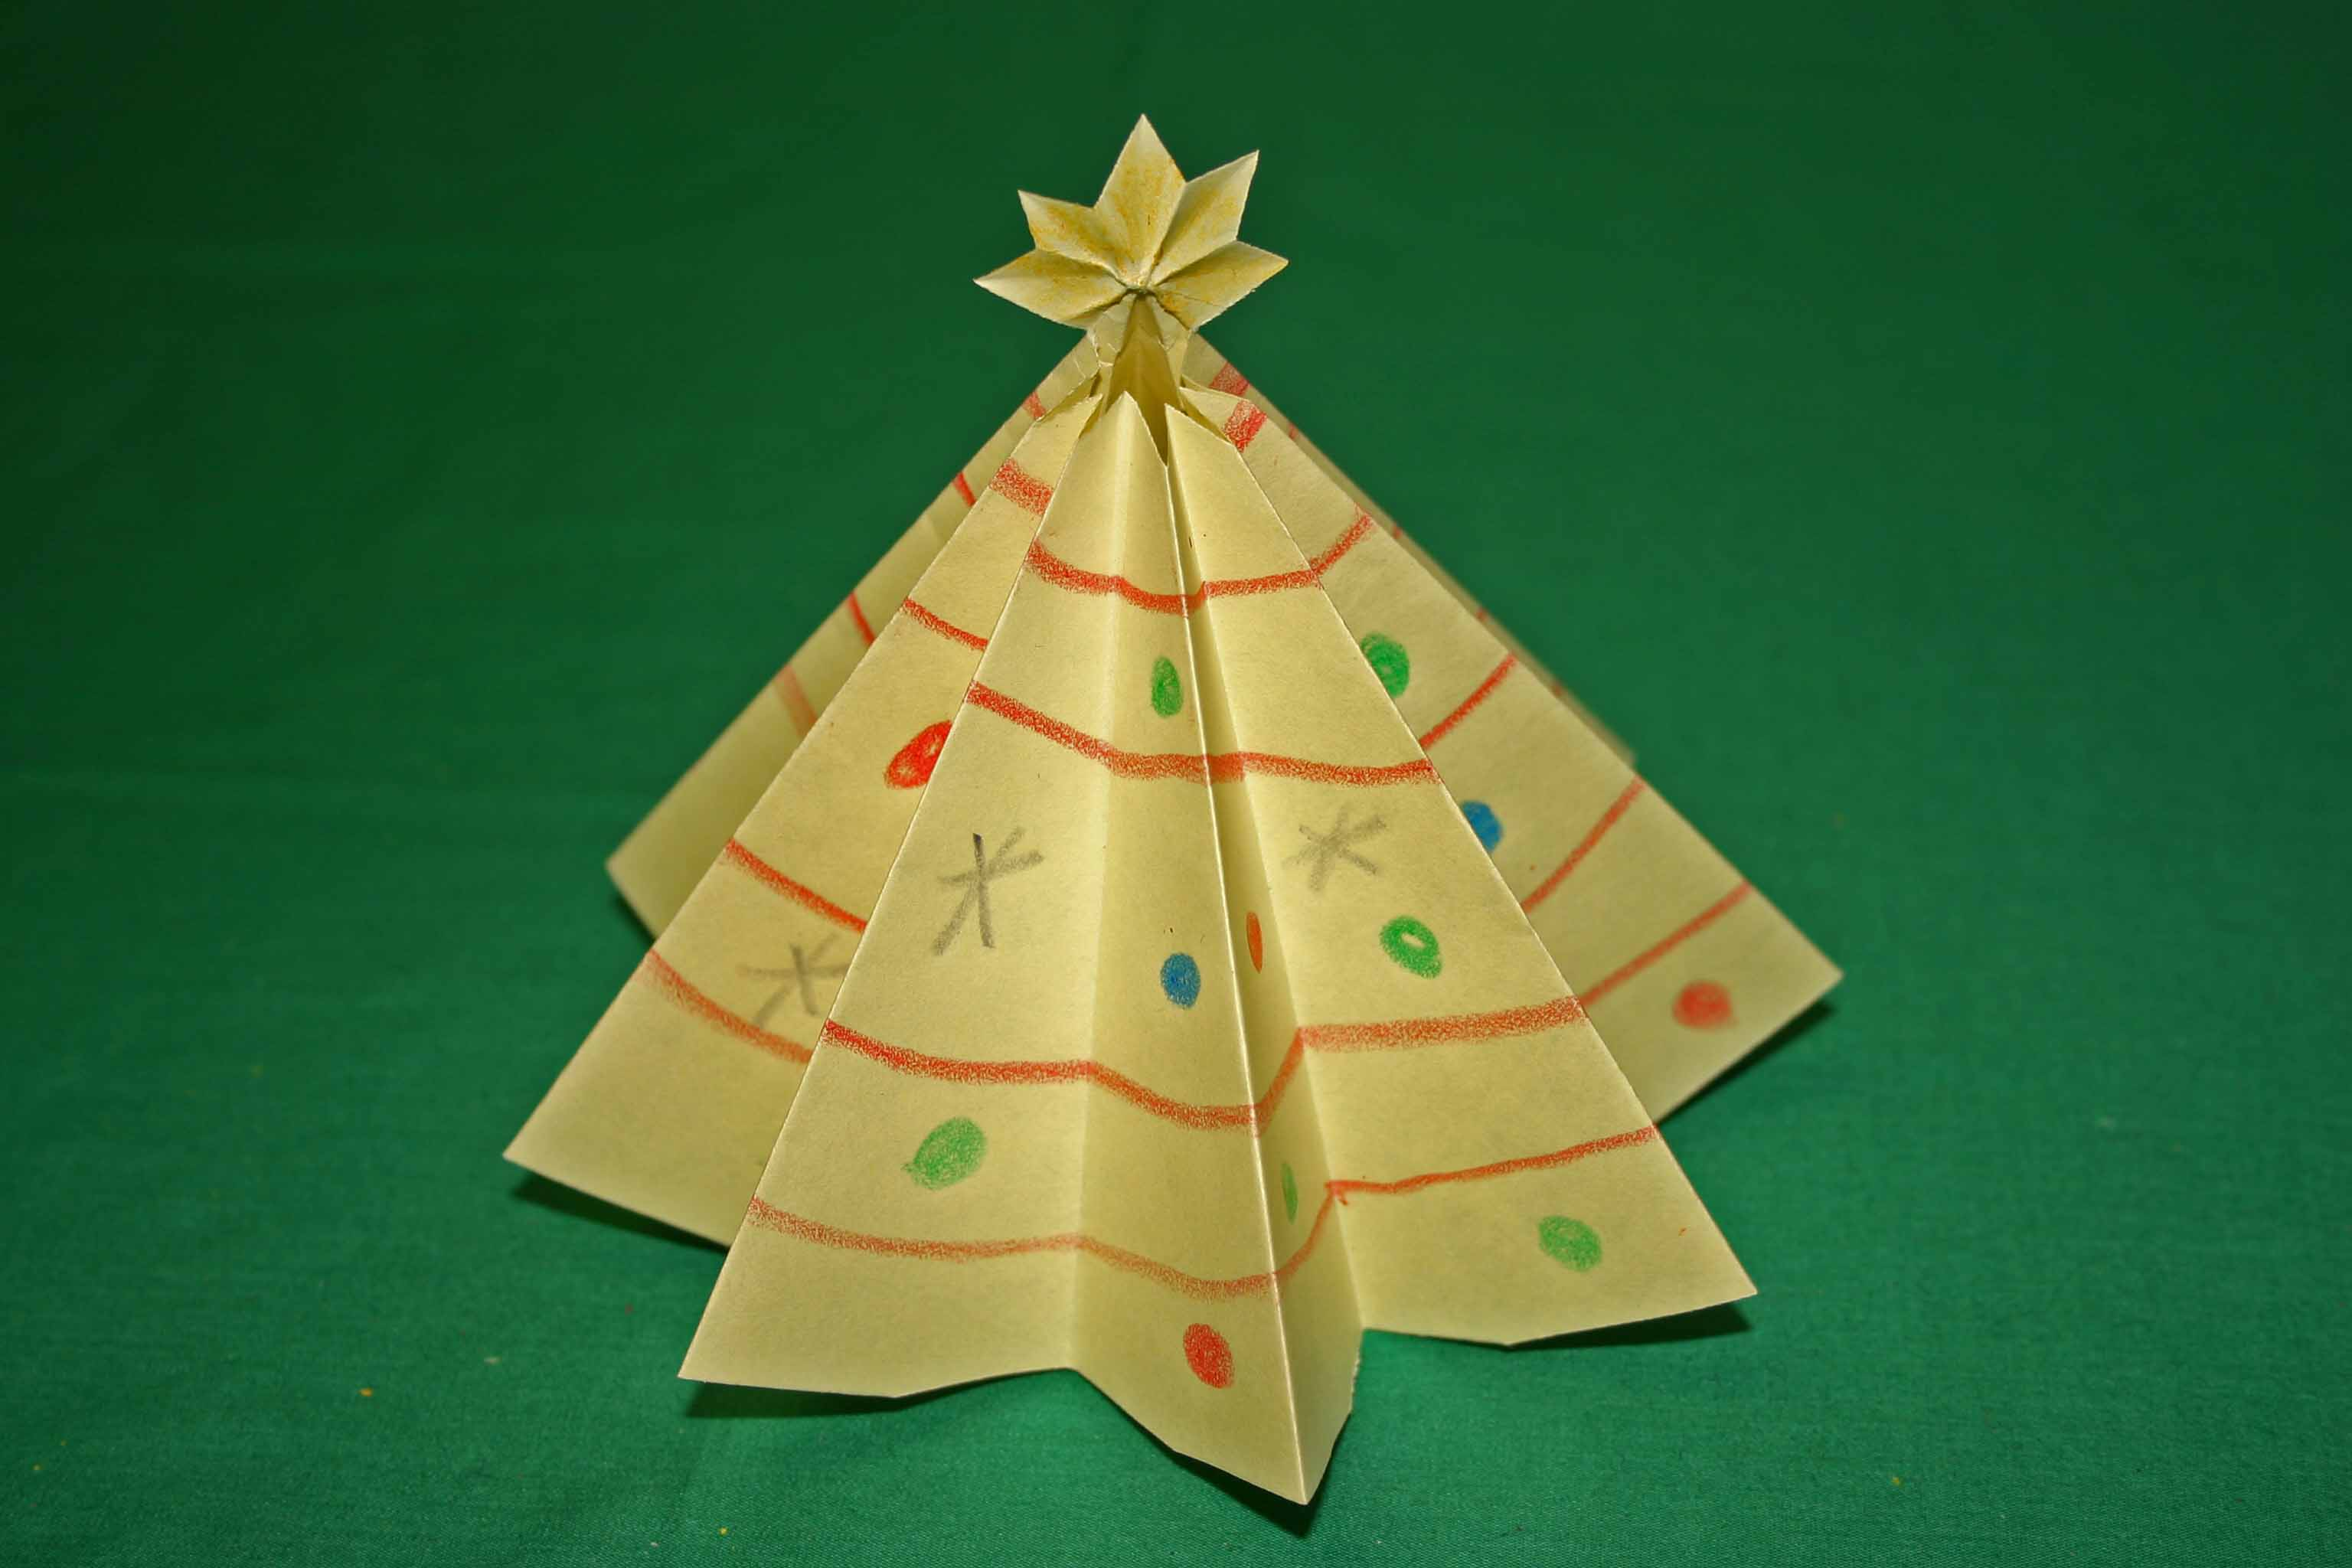 Artsy Craftsy Holiday Cheer Crafts For Kids Ages 8-12 Christmas